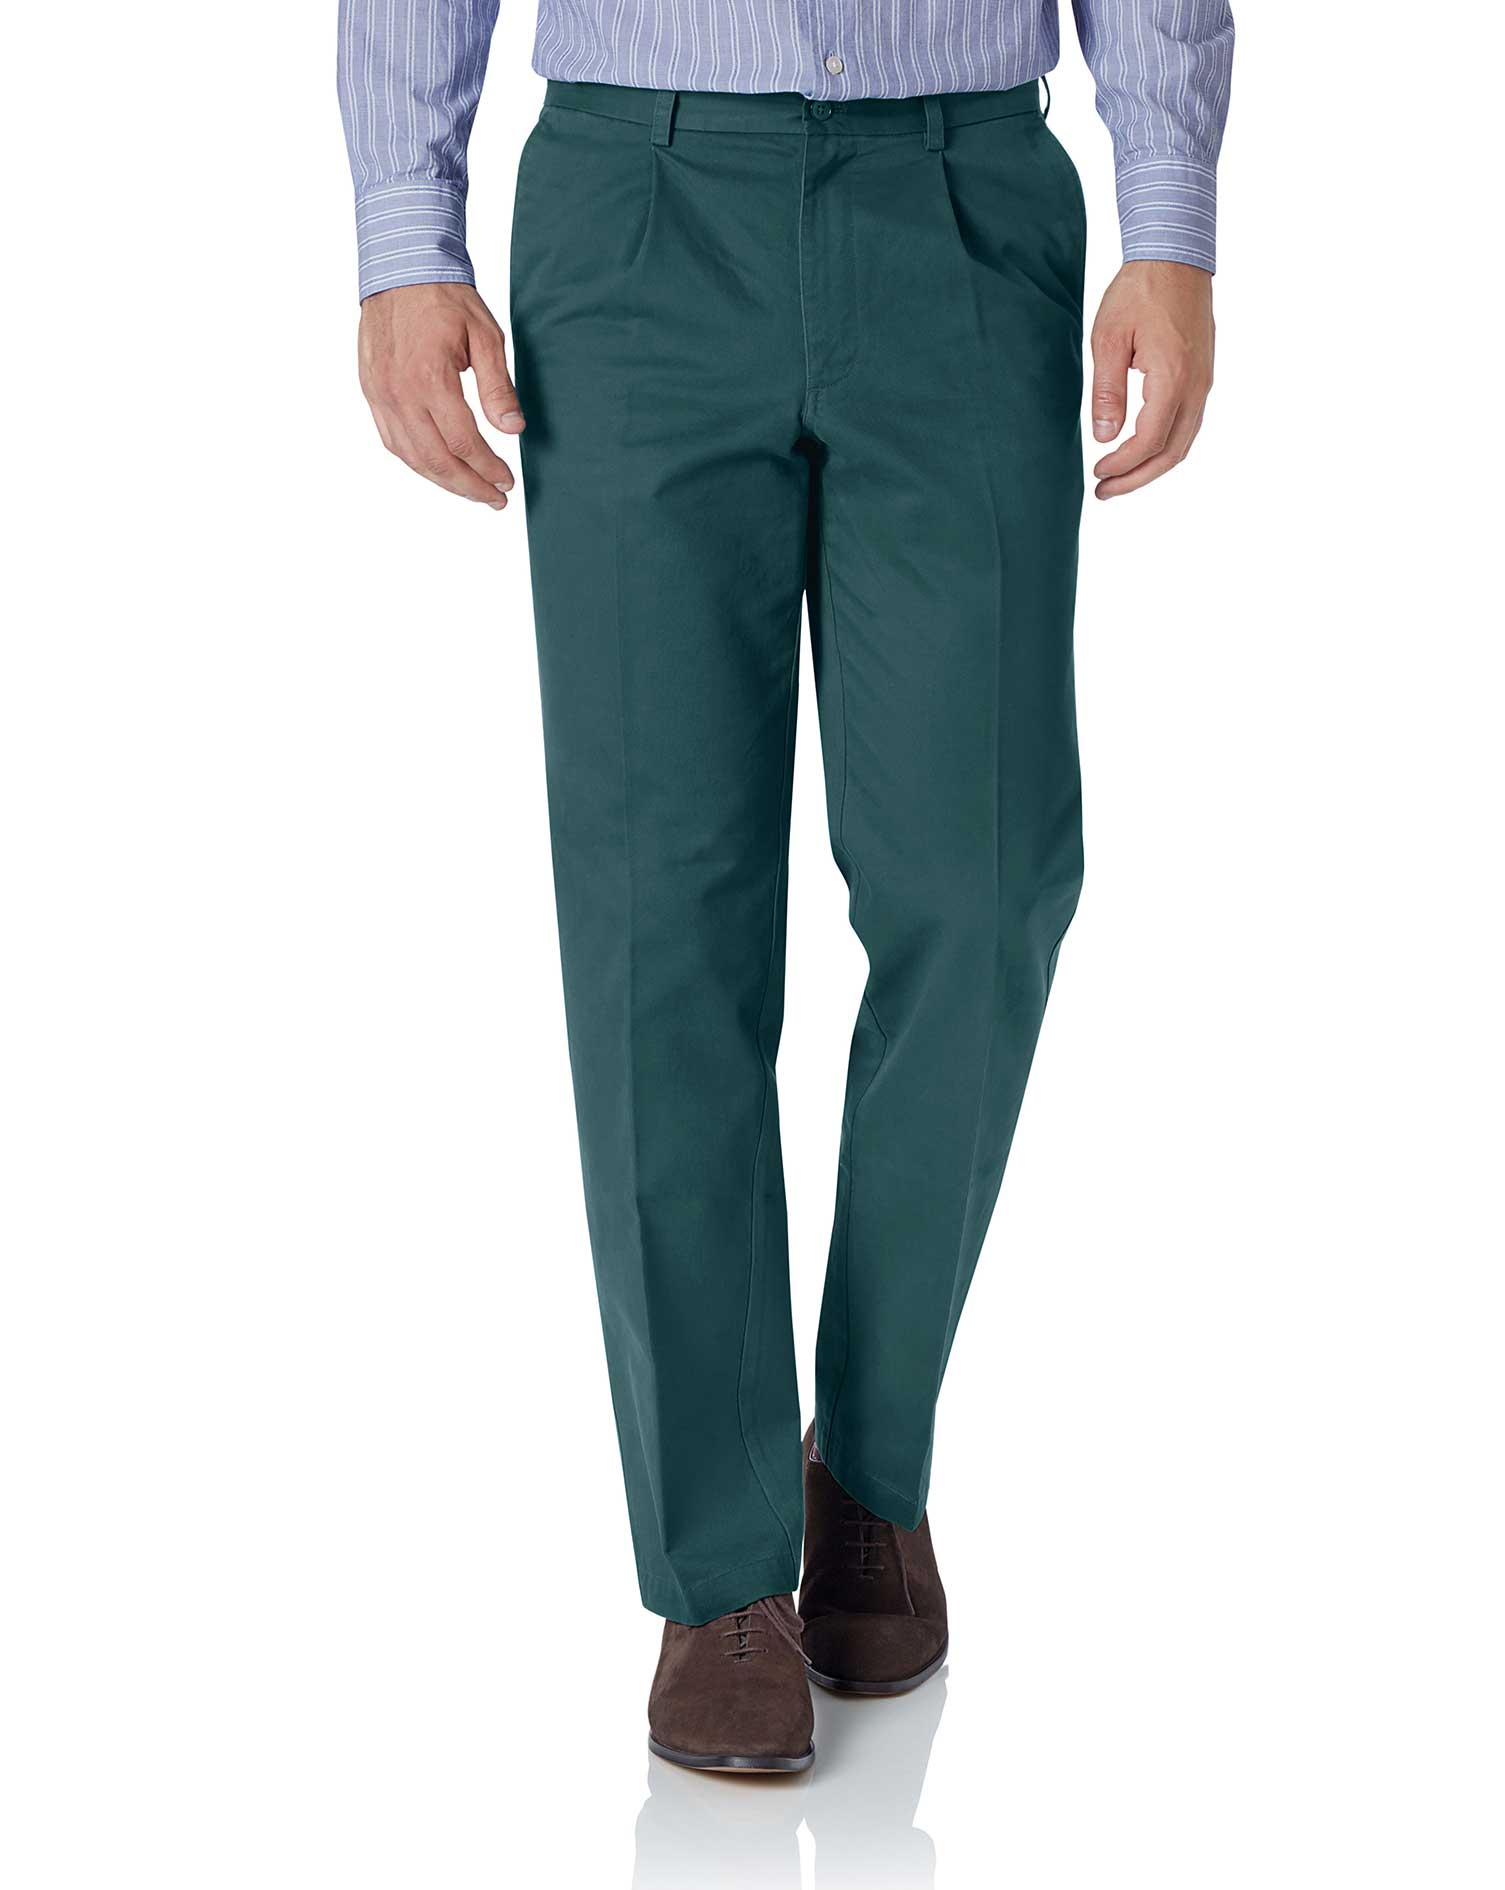 Teal Classic Fit Single Pleat Washed Cotton Chino Trousers Size W32 L38 by Charles Tyrwhitt